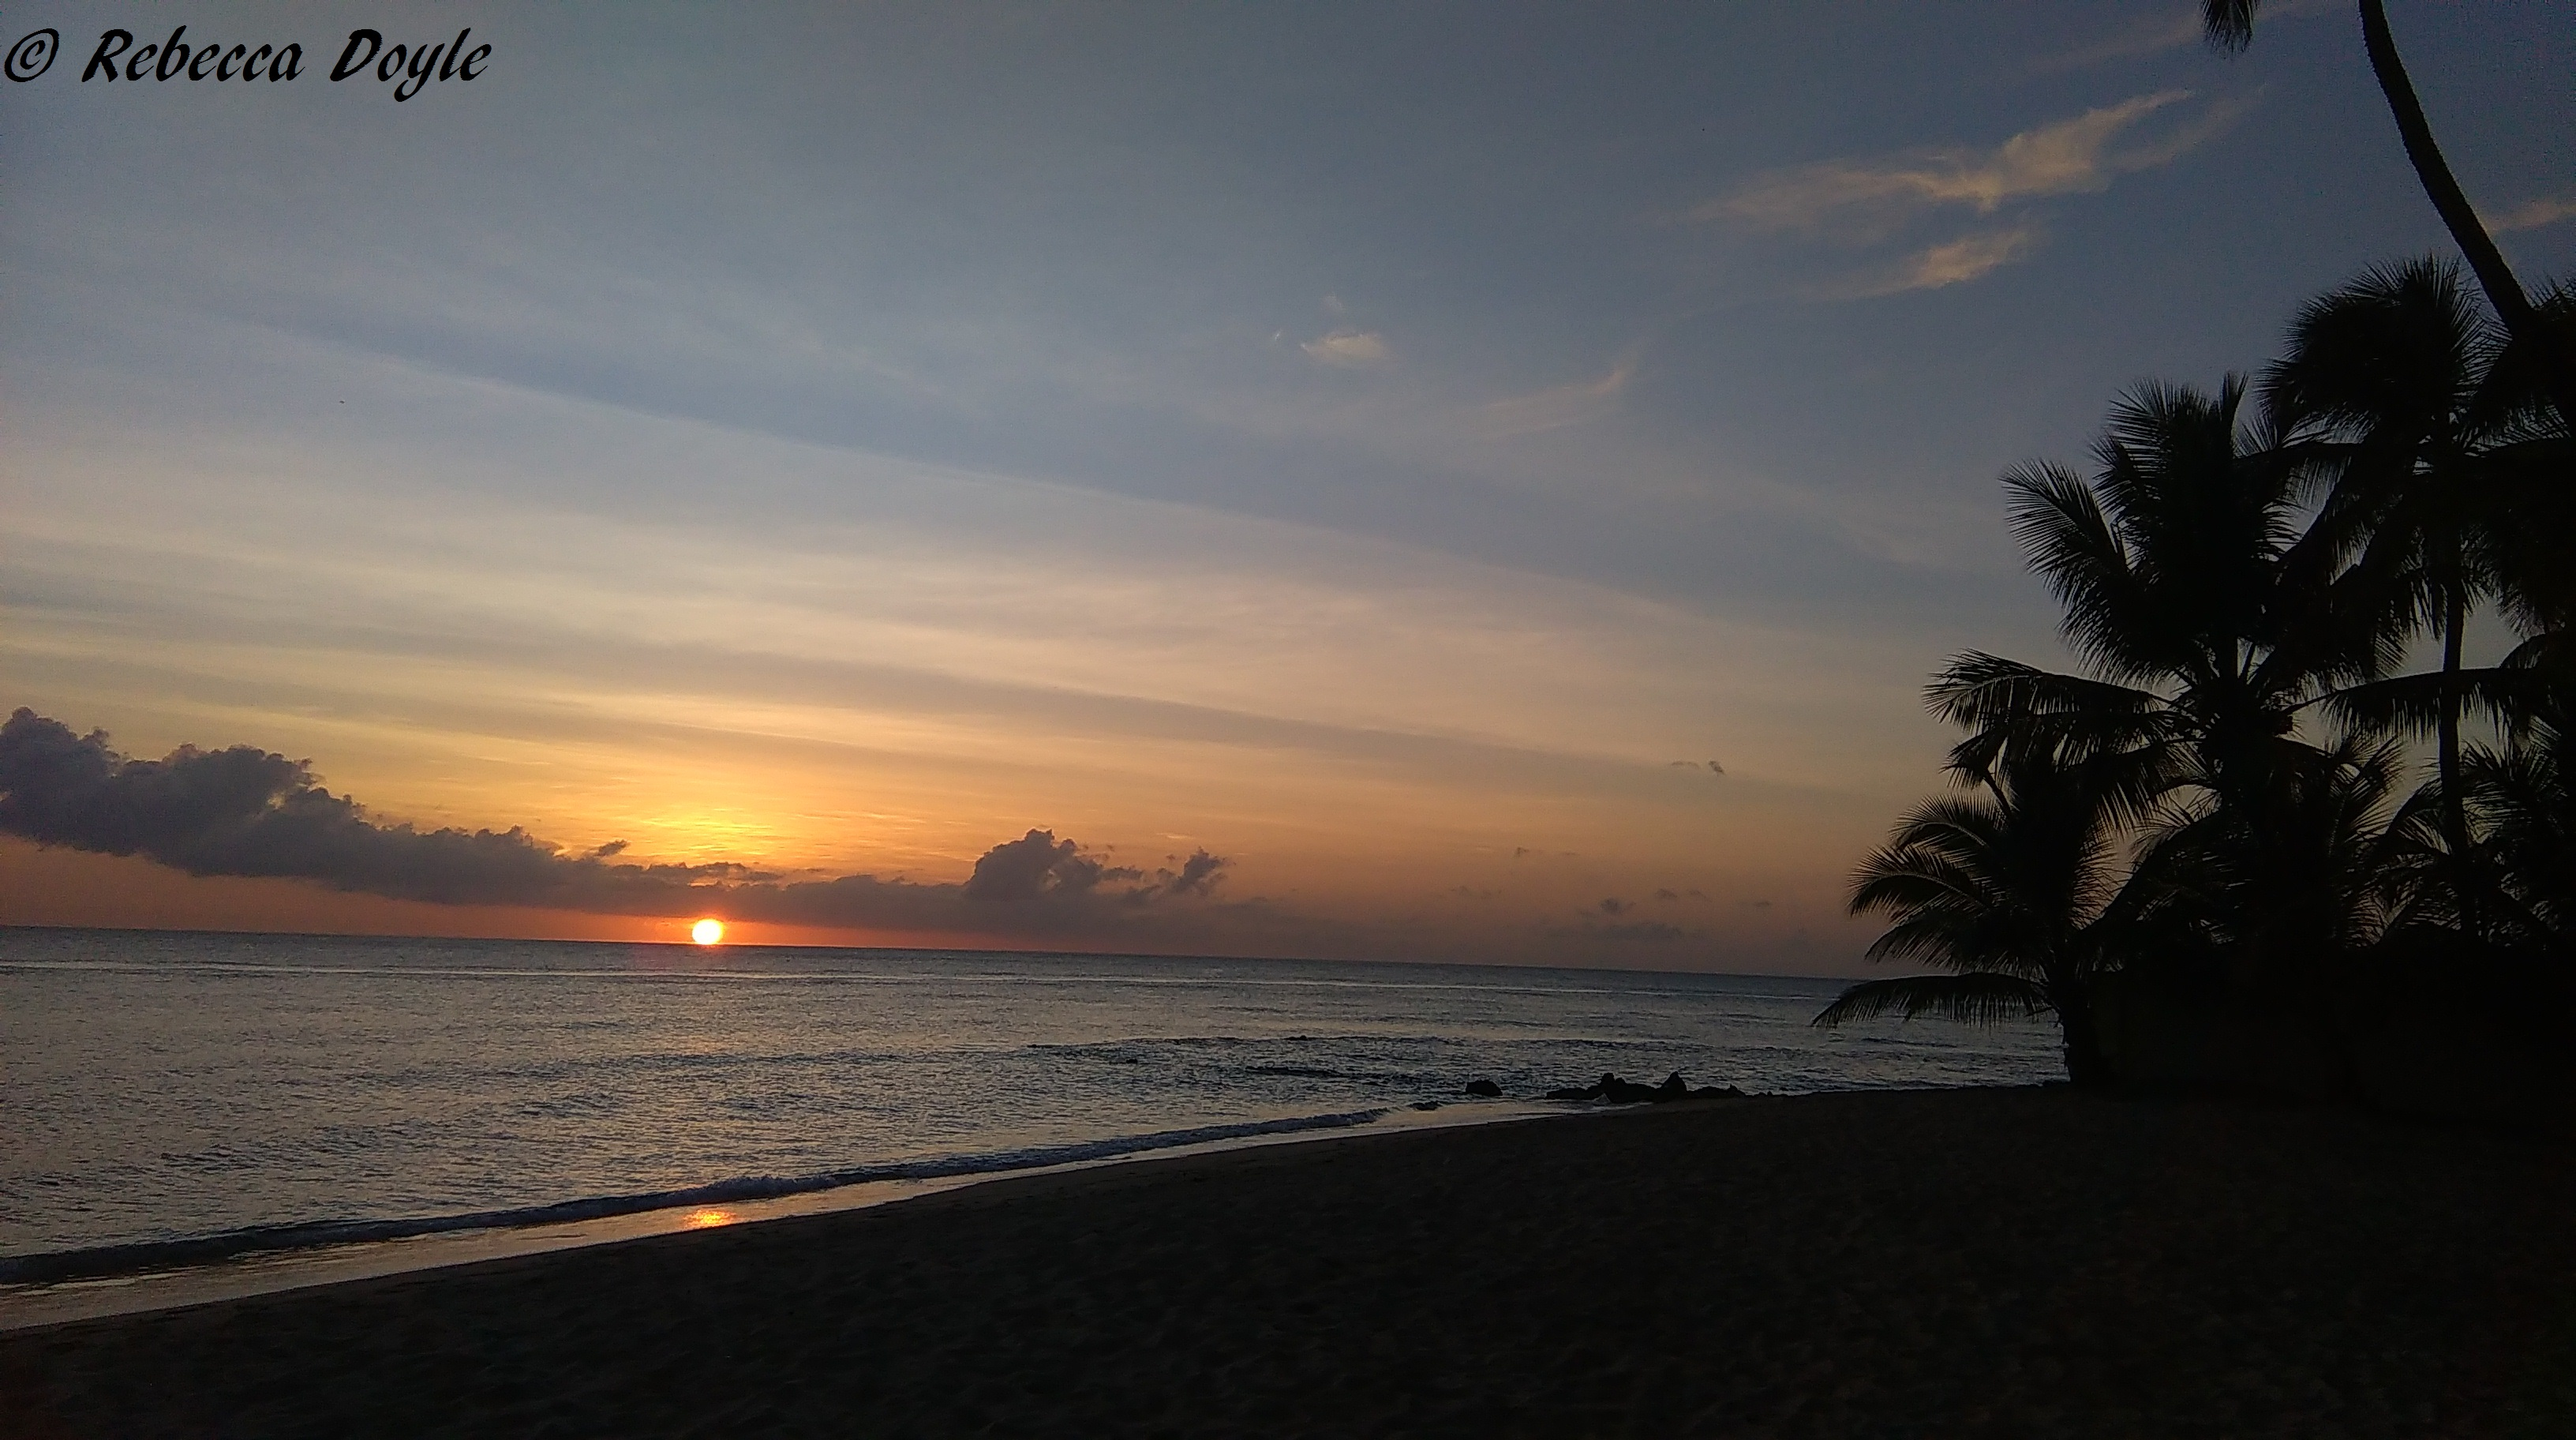 One of the many perks of the job - a beautiful Barbados sunset